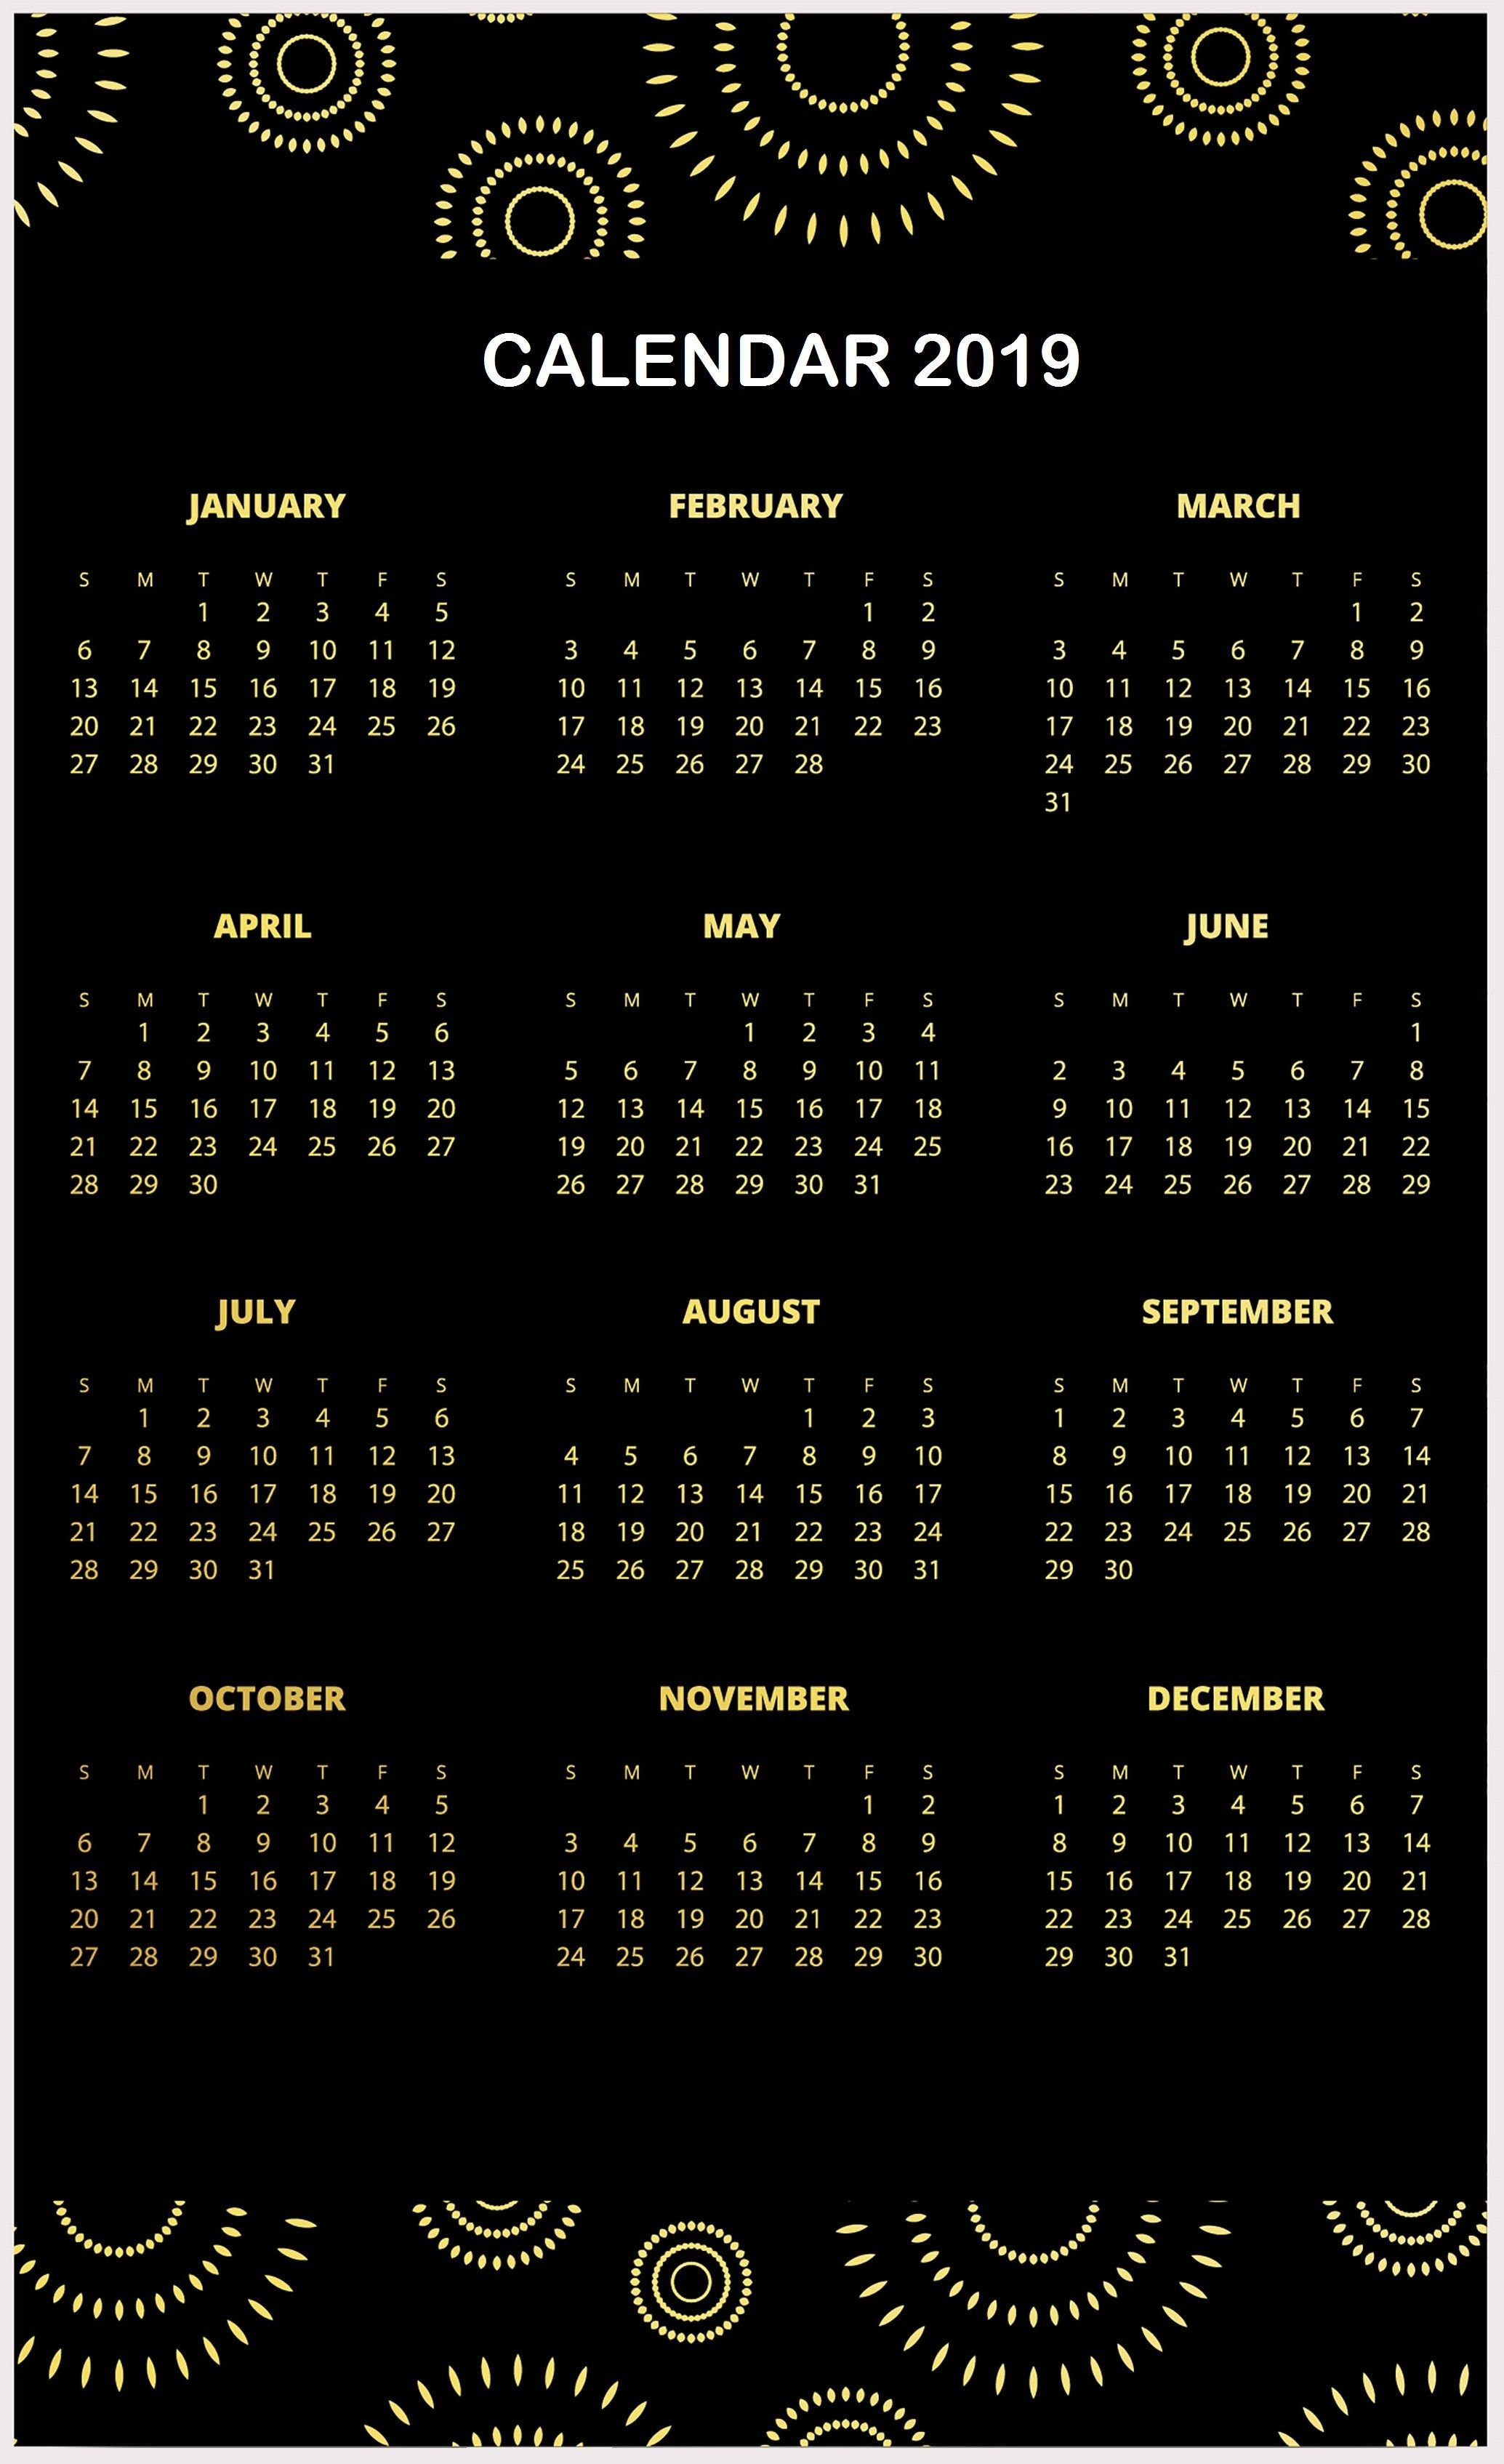 Amazing 2019 Calendar Template One Page Design Layouts | Calendar Calendar 2019 Layout